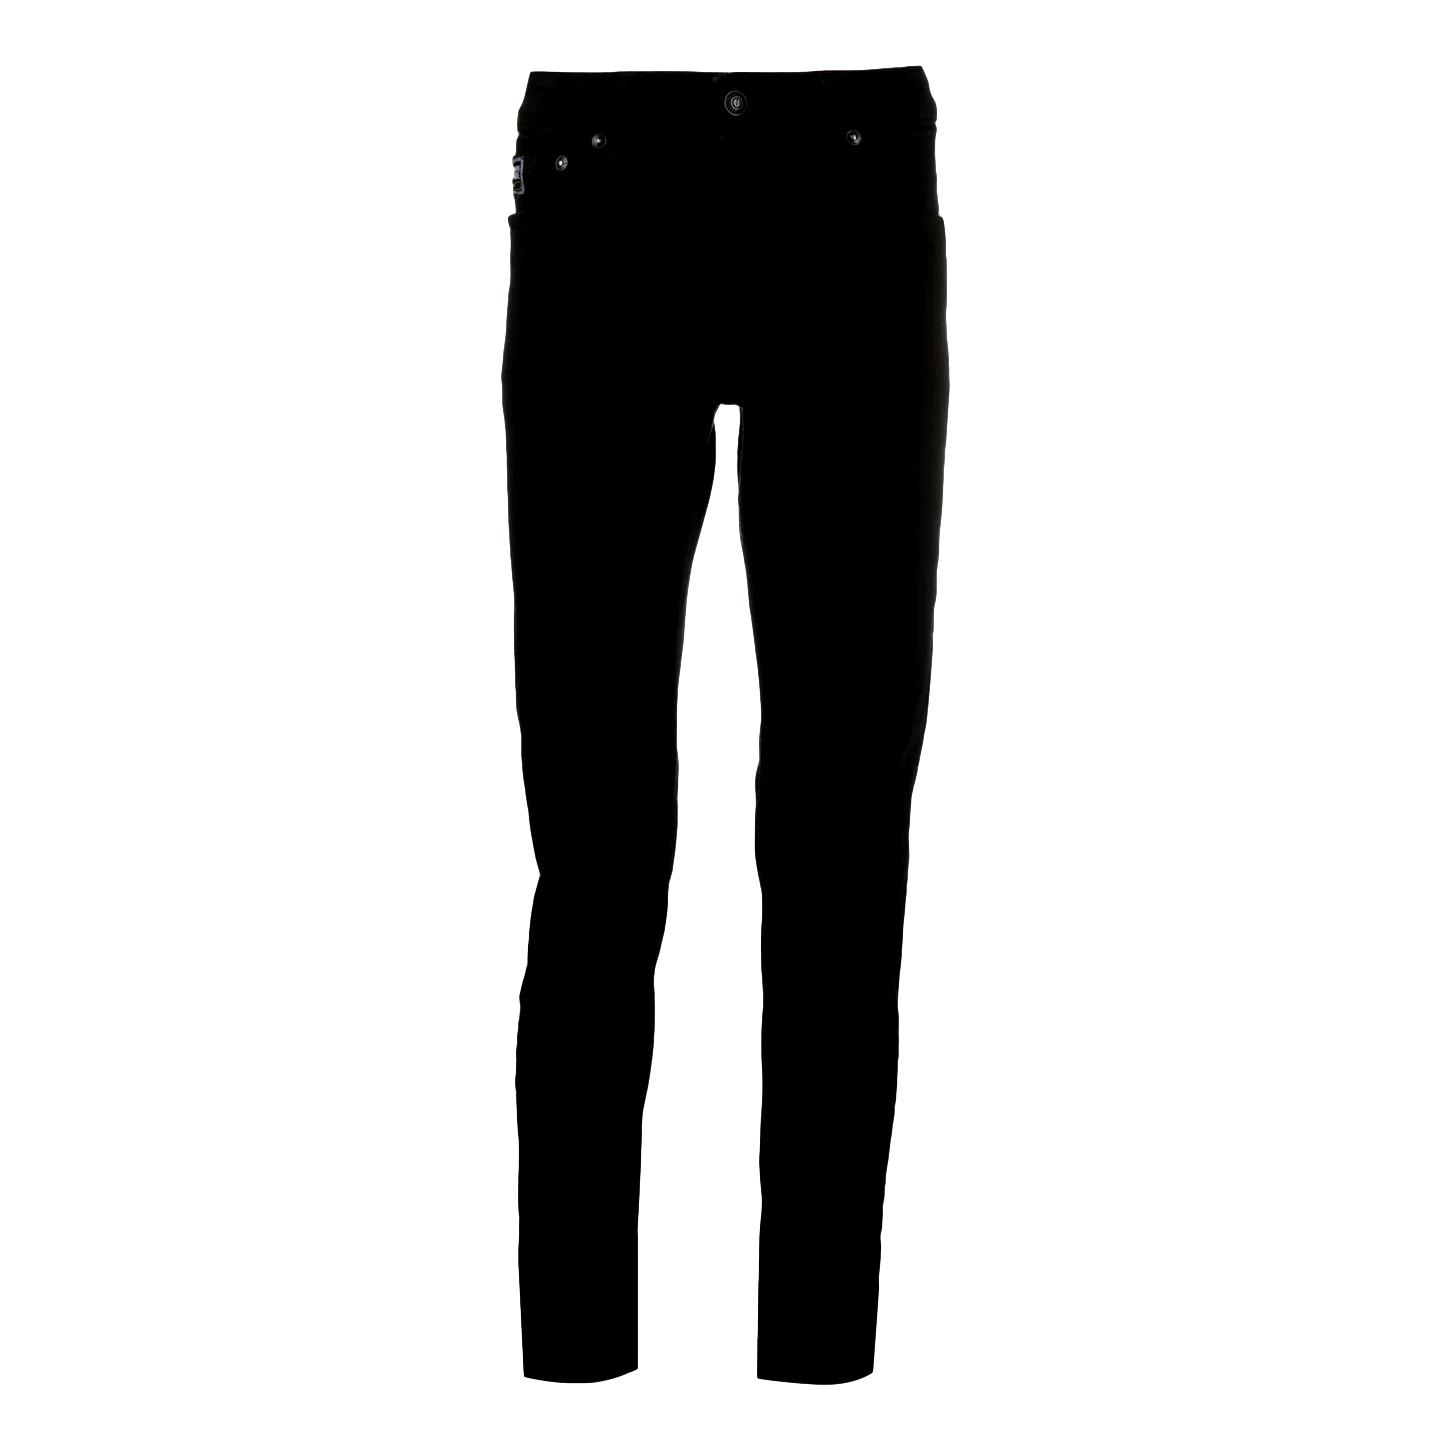 logo embroidered slim-fit jeans VERSACE JEANS COUTURE |  | A2GWA0D4 60366899